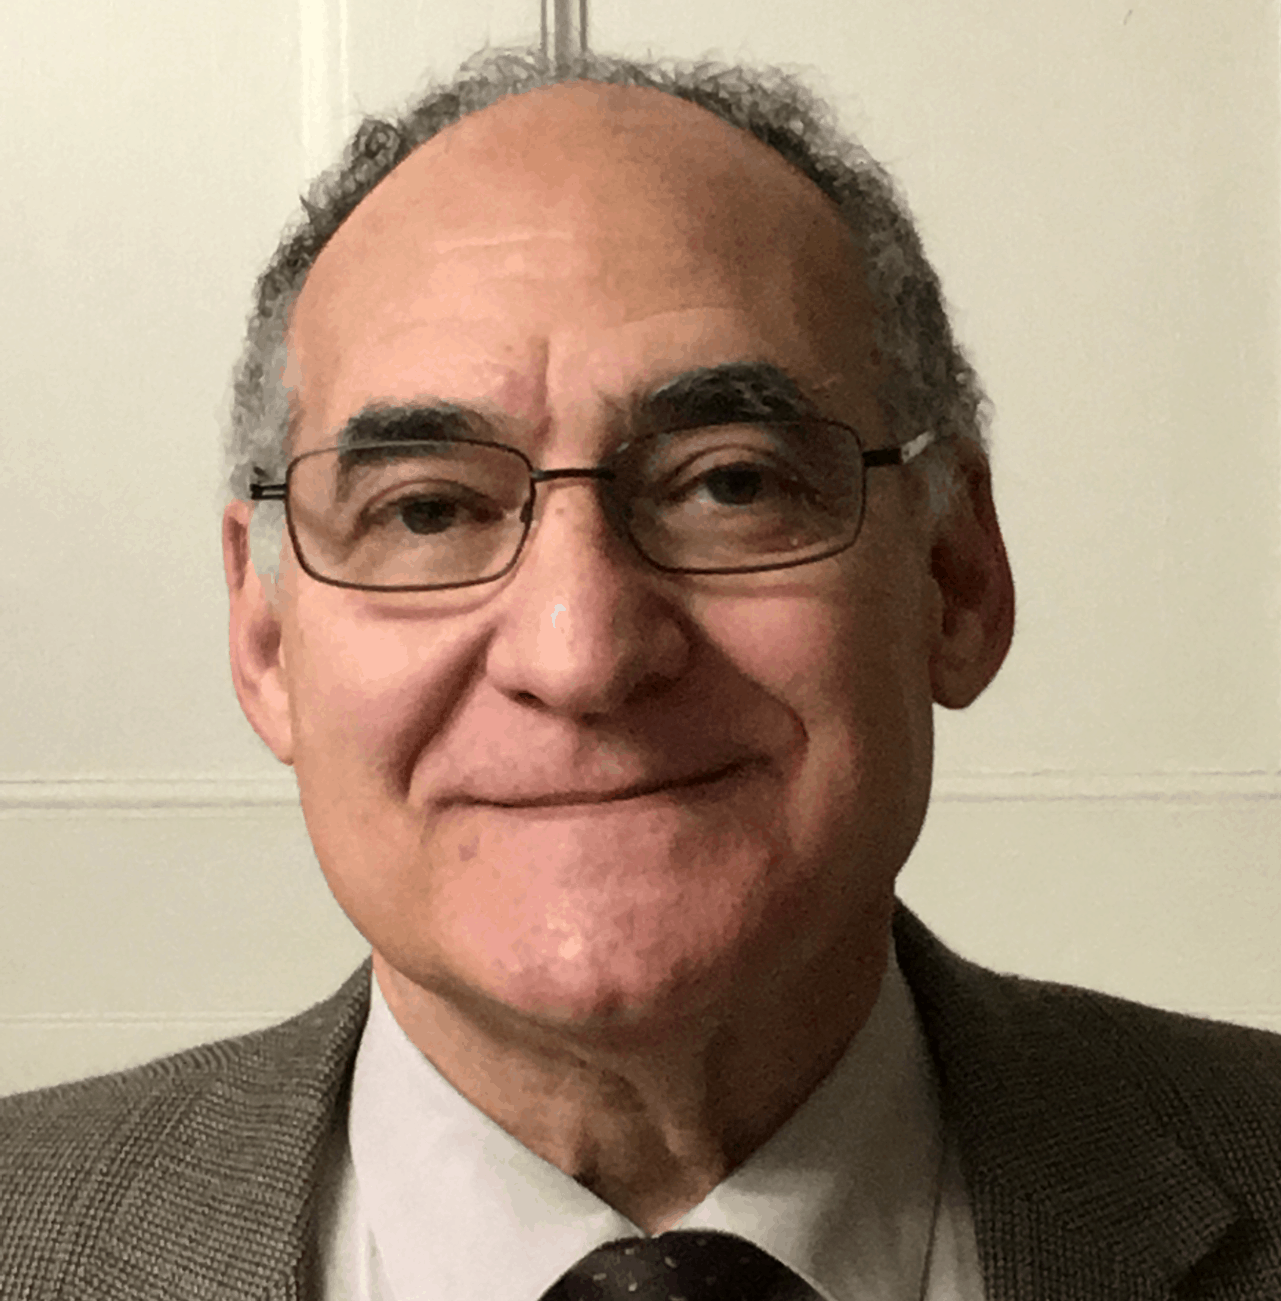 CTLN Opinion+: Robert Fishman